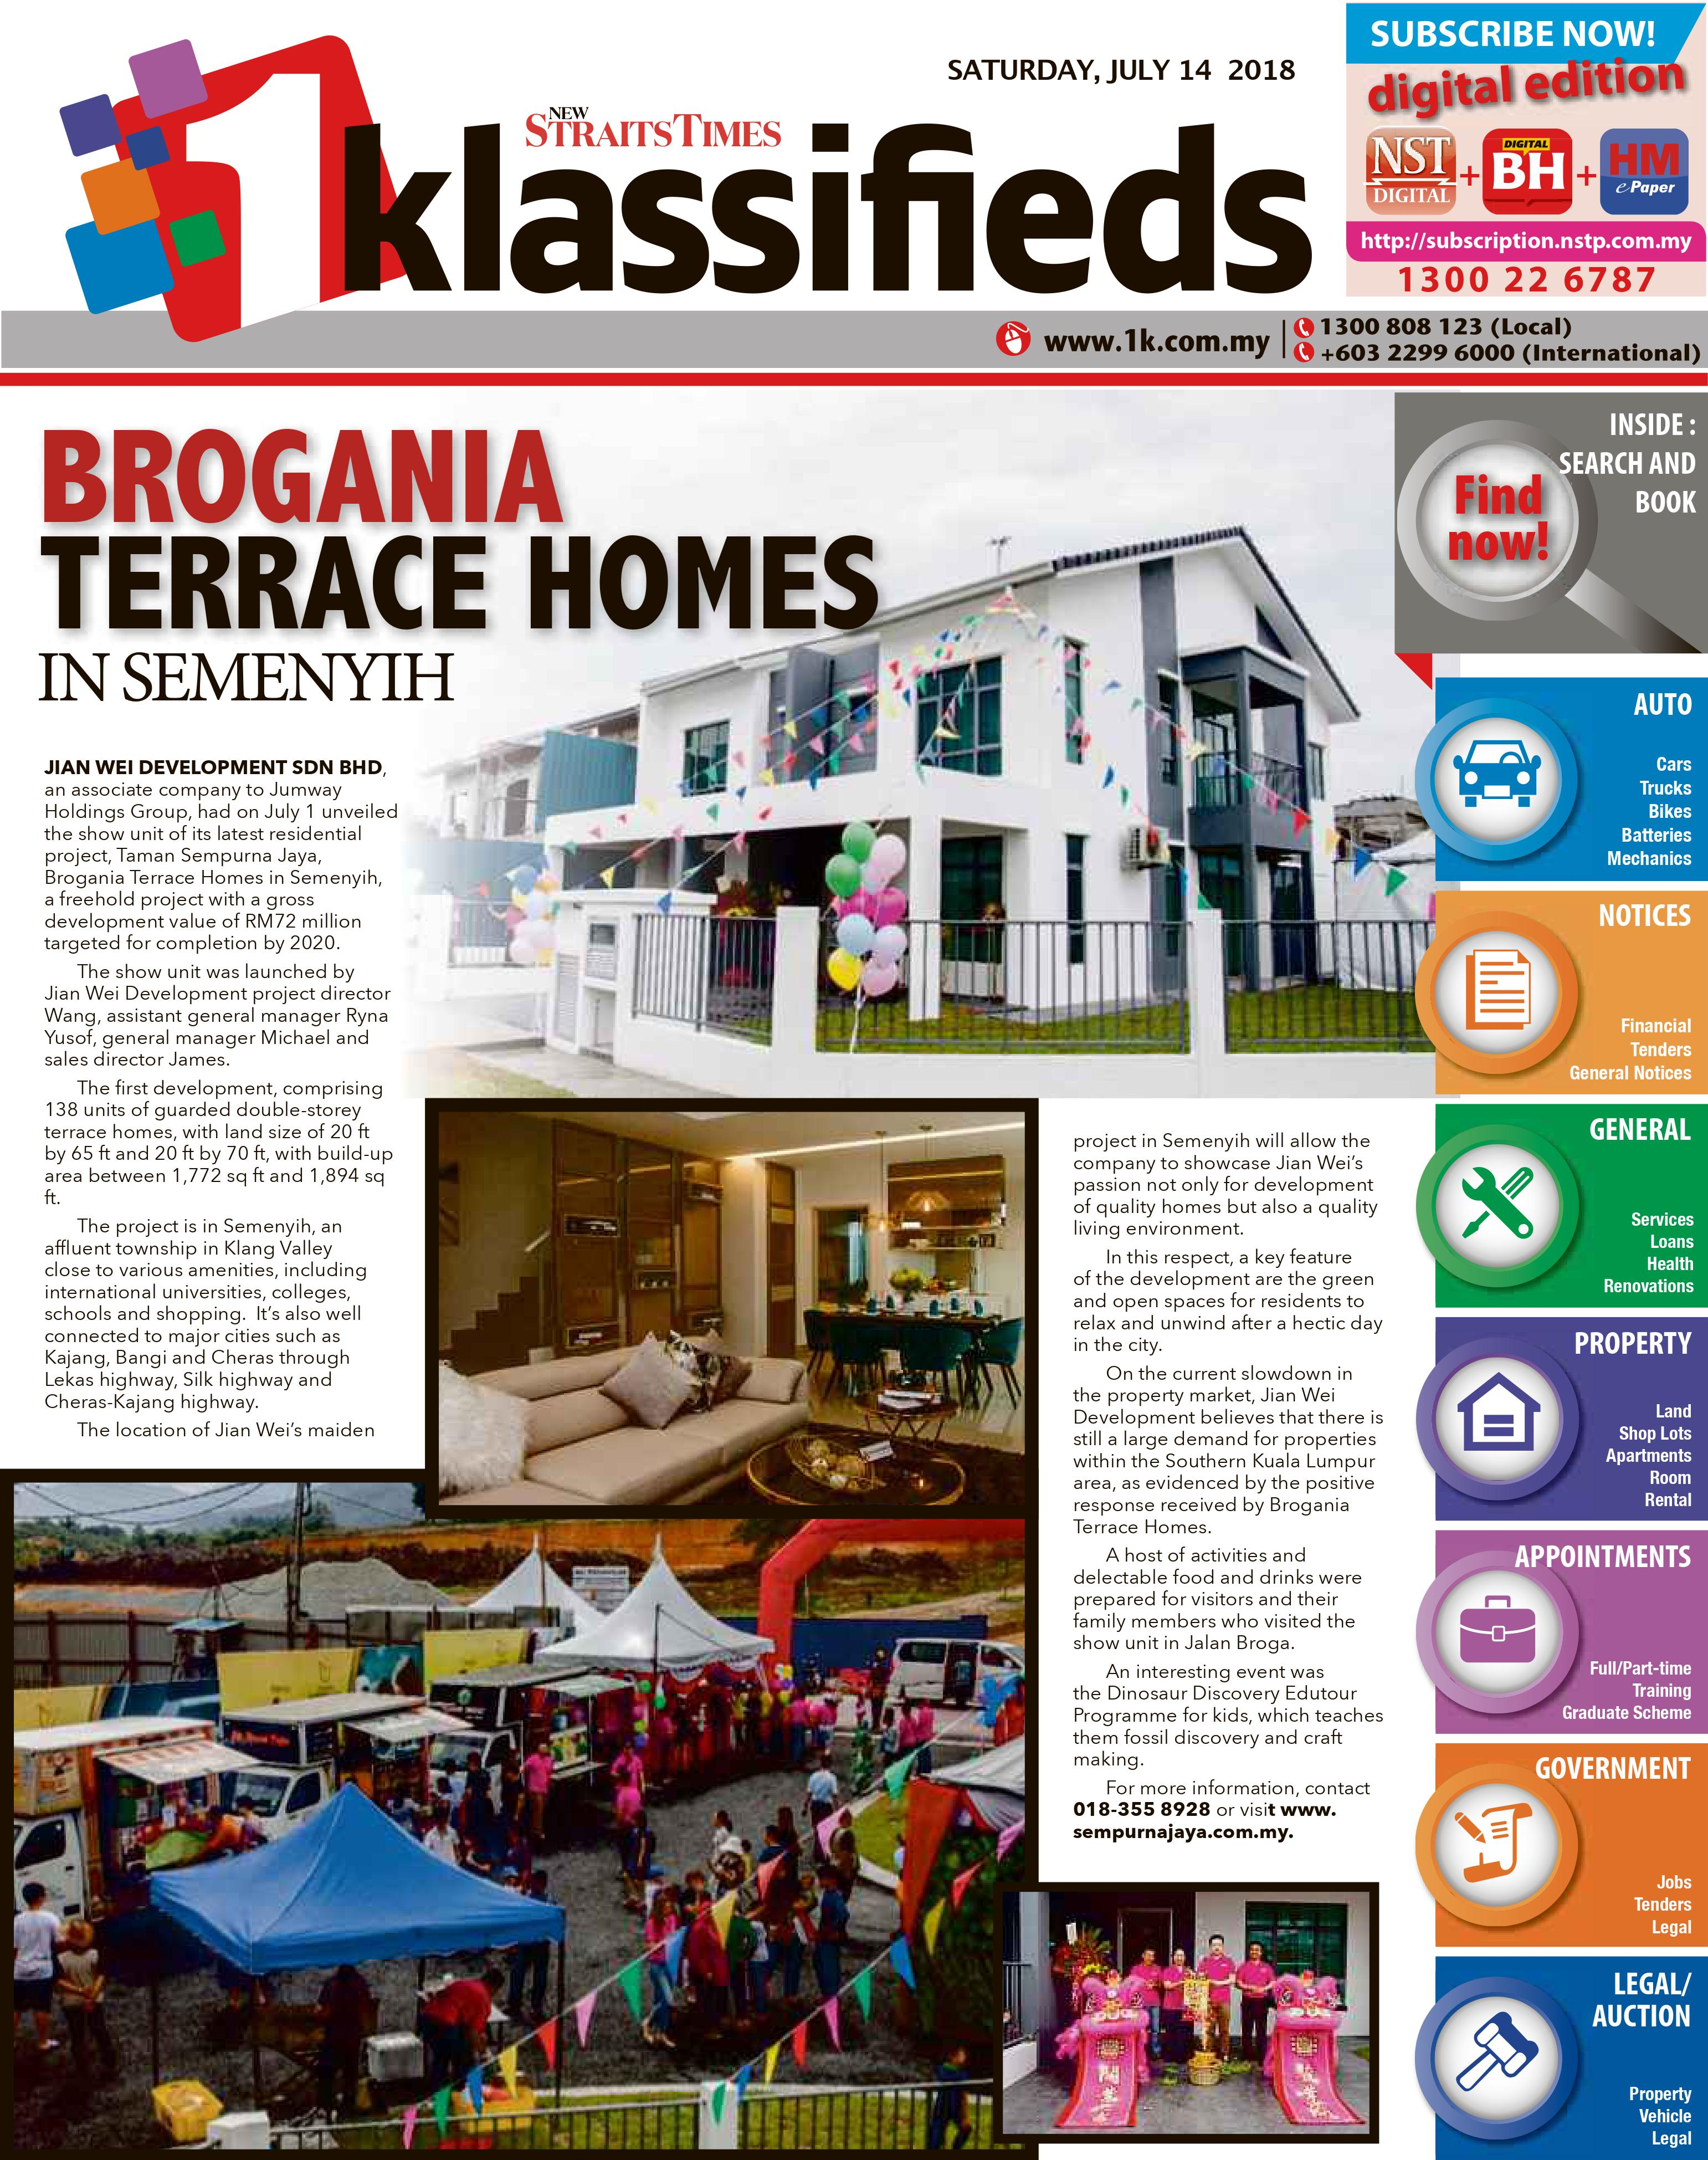 Brogania Terrace Homes In Semenyih